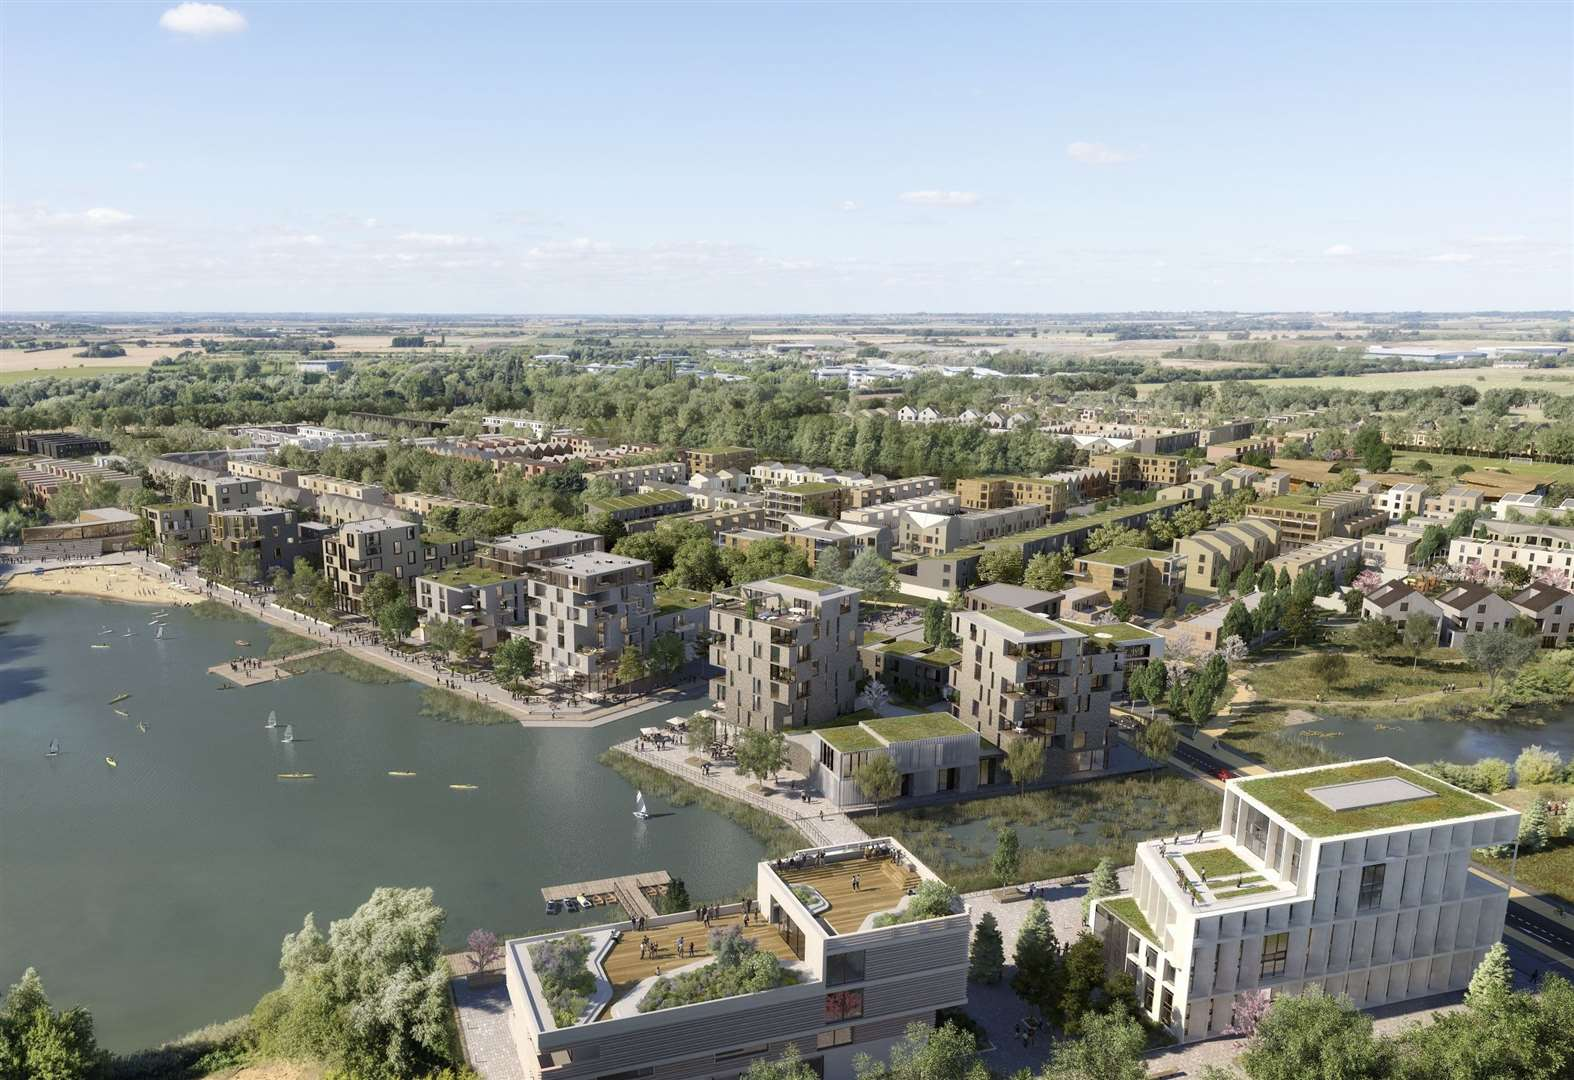 66,700 homes could be built in Greater Cambridge by 2040, under new Local Plan